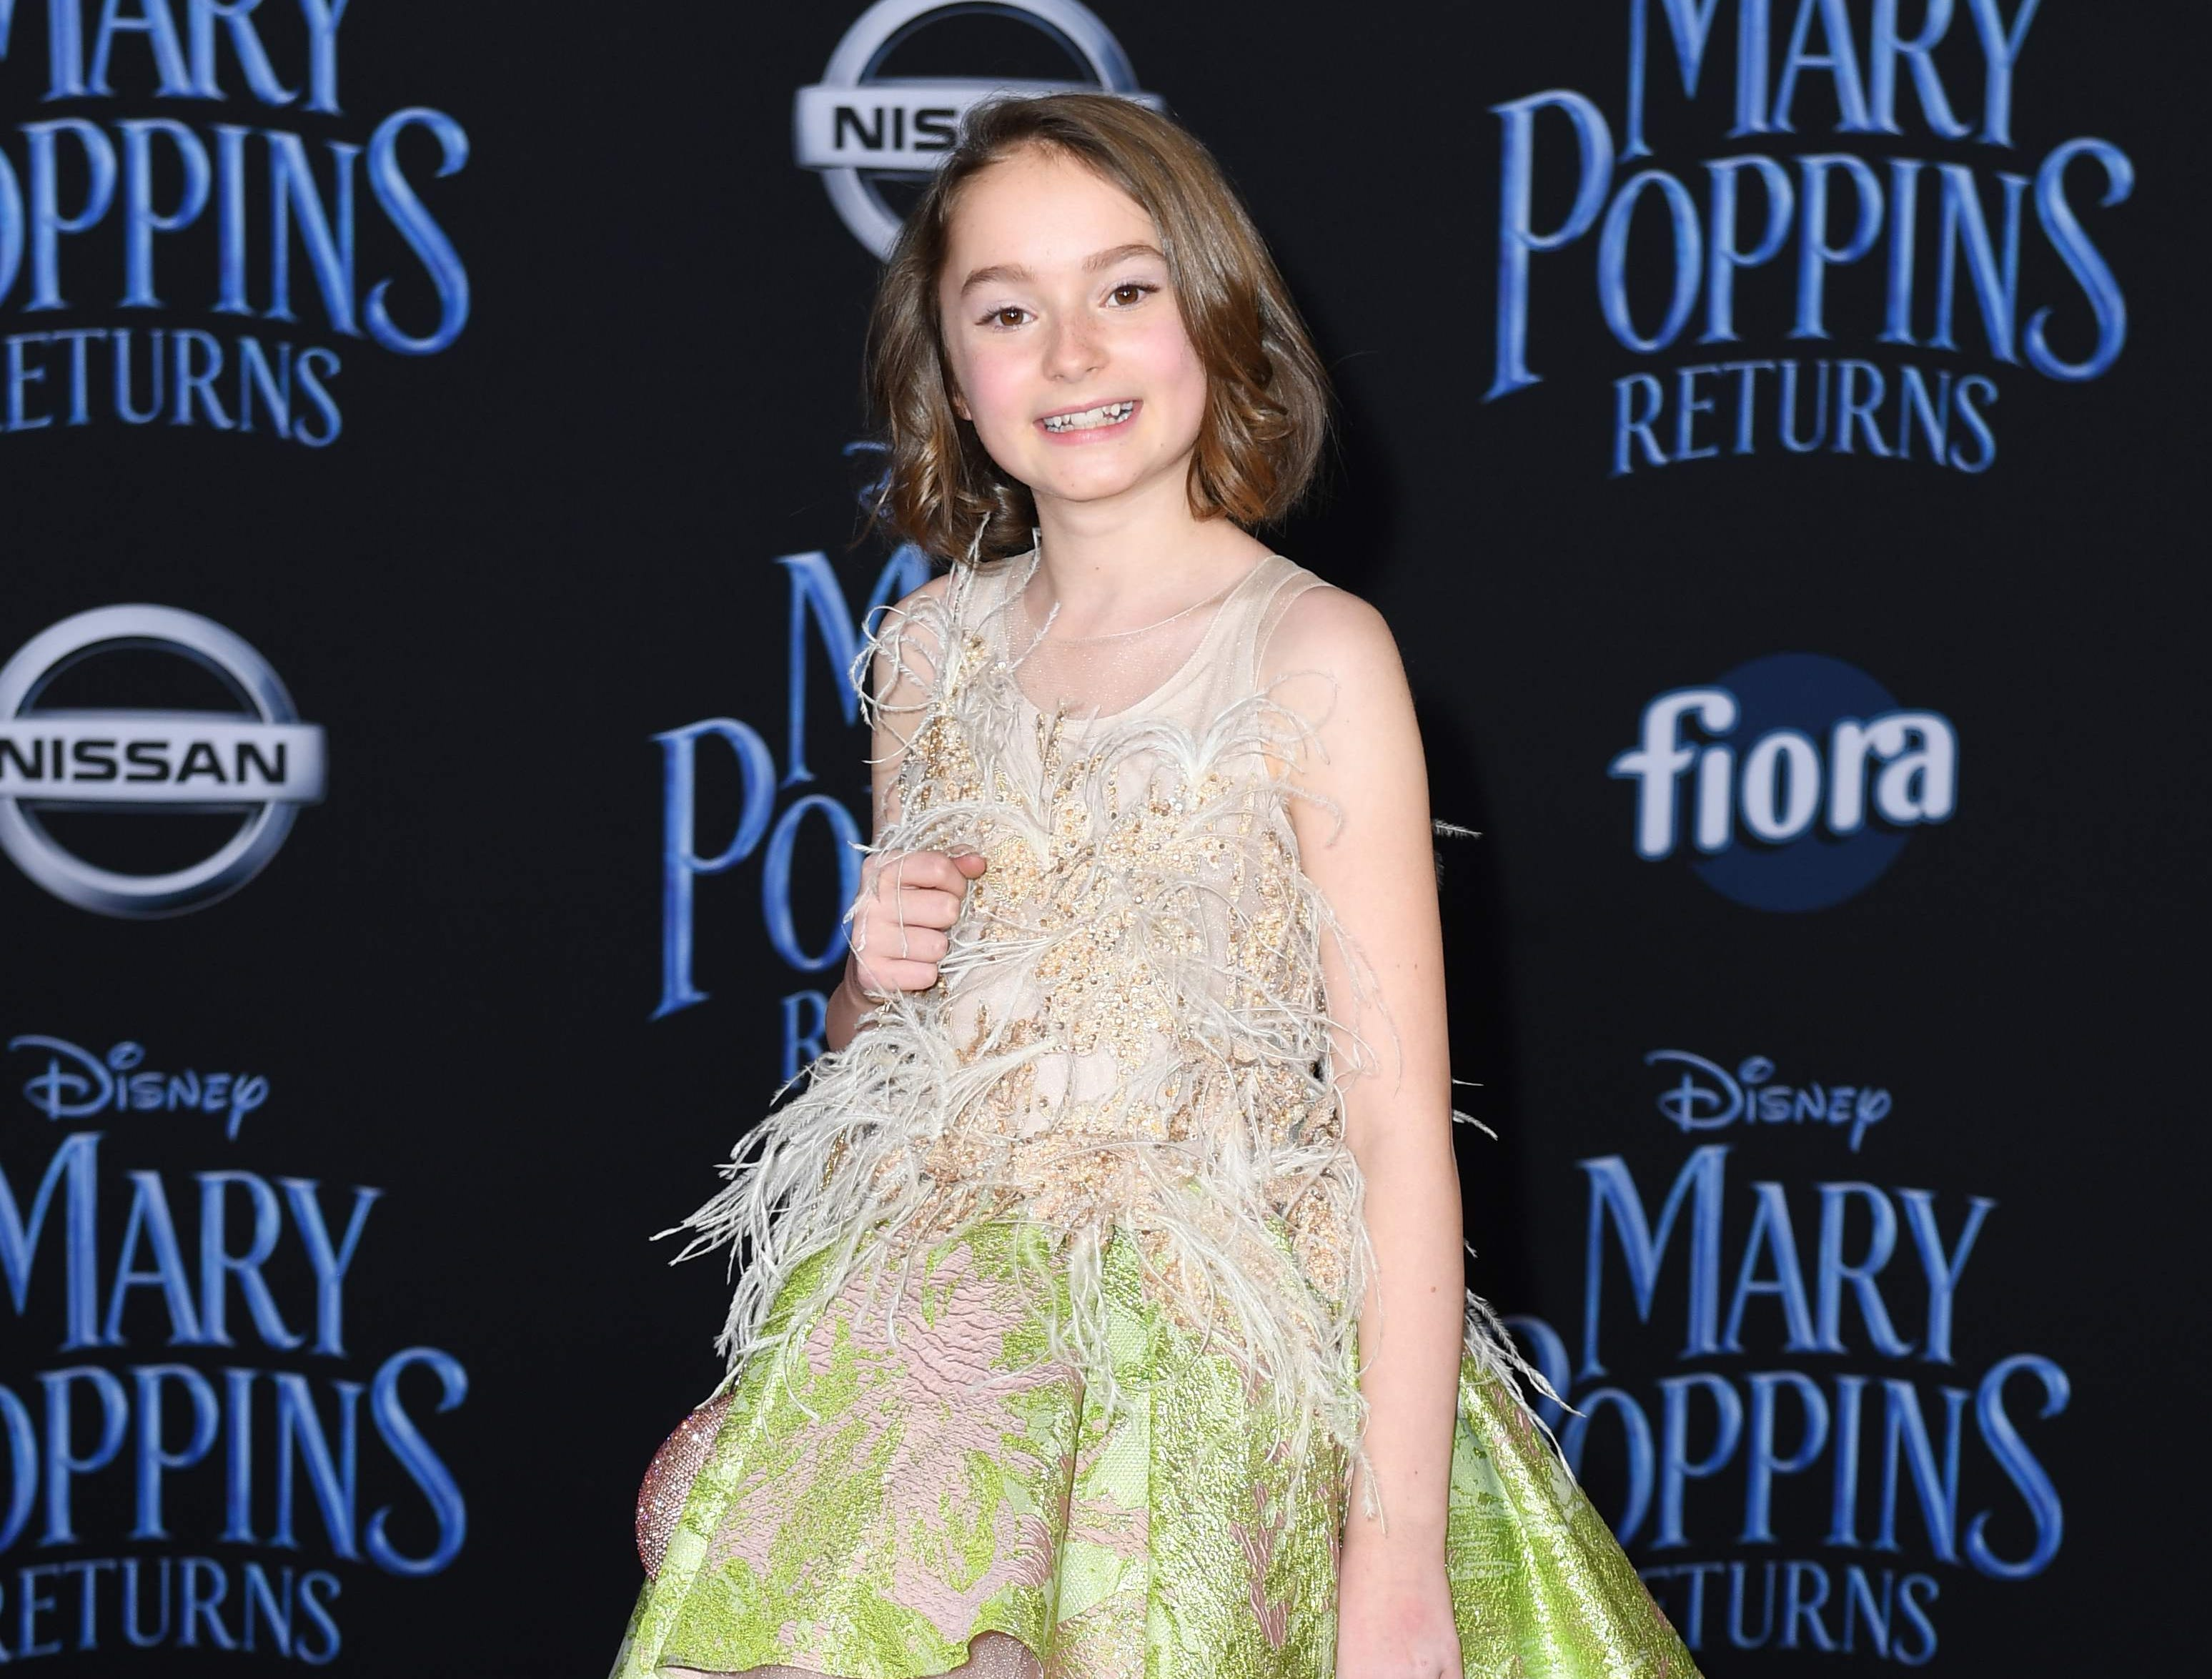 """British actress Pixie Davies arrives for the world premiere of Disney's """"Mary Poppins Returns"""" at the Dolby theatre in Hollywood on November 29, 2018. (Photo by VALERIE MACON / AFP)VALERIE MACON/AFP/Getty Images ORG XMIT: 'Mary Pop ORIG FILE ID: AFP_1B810L"""